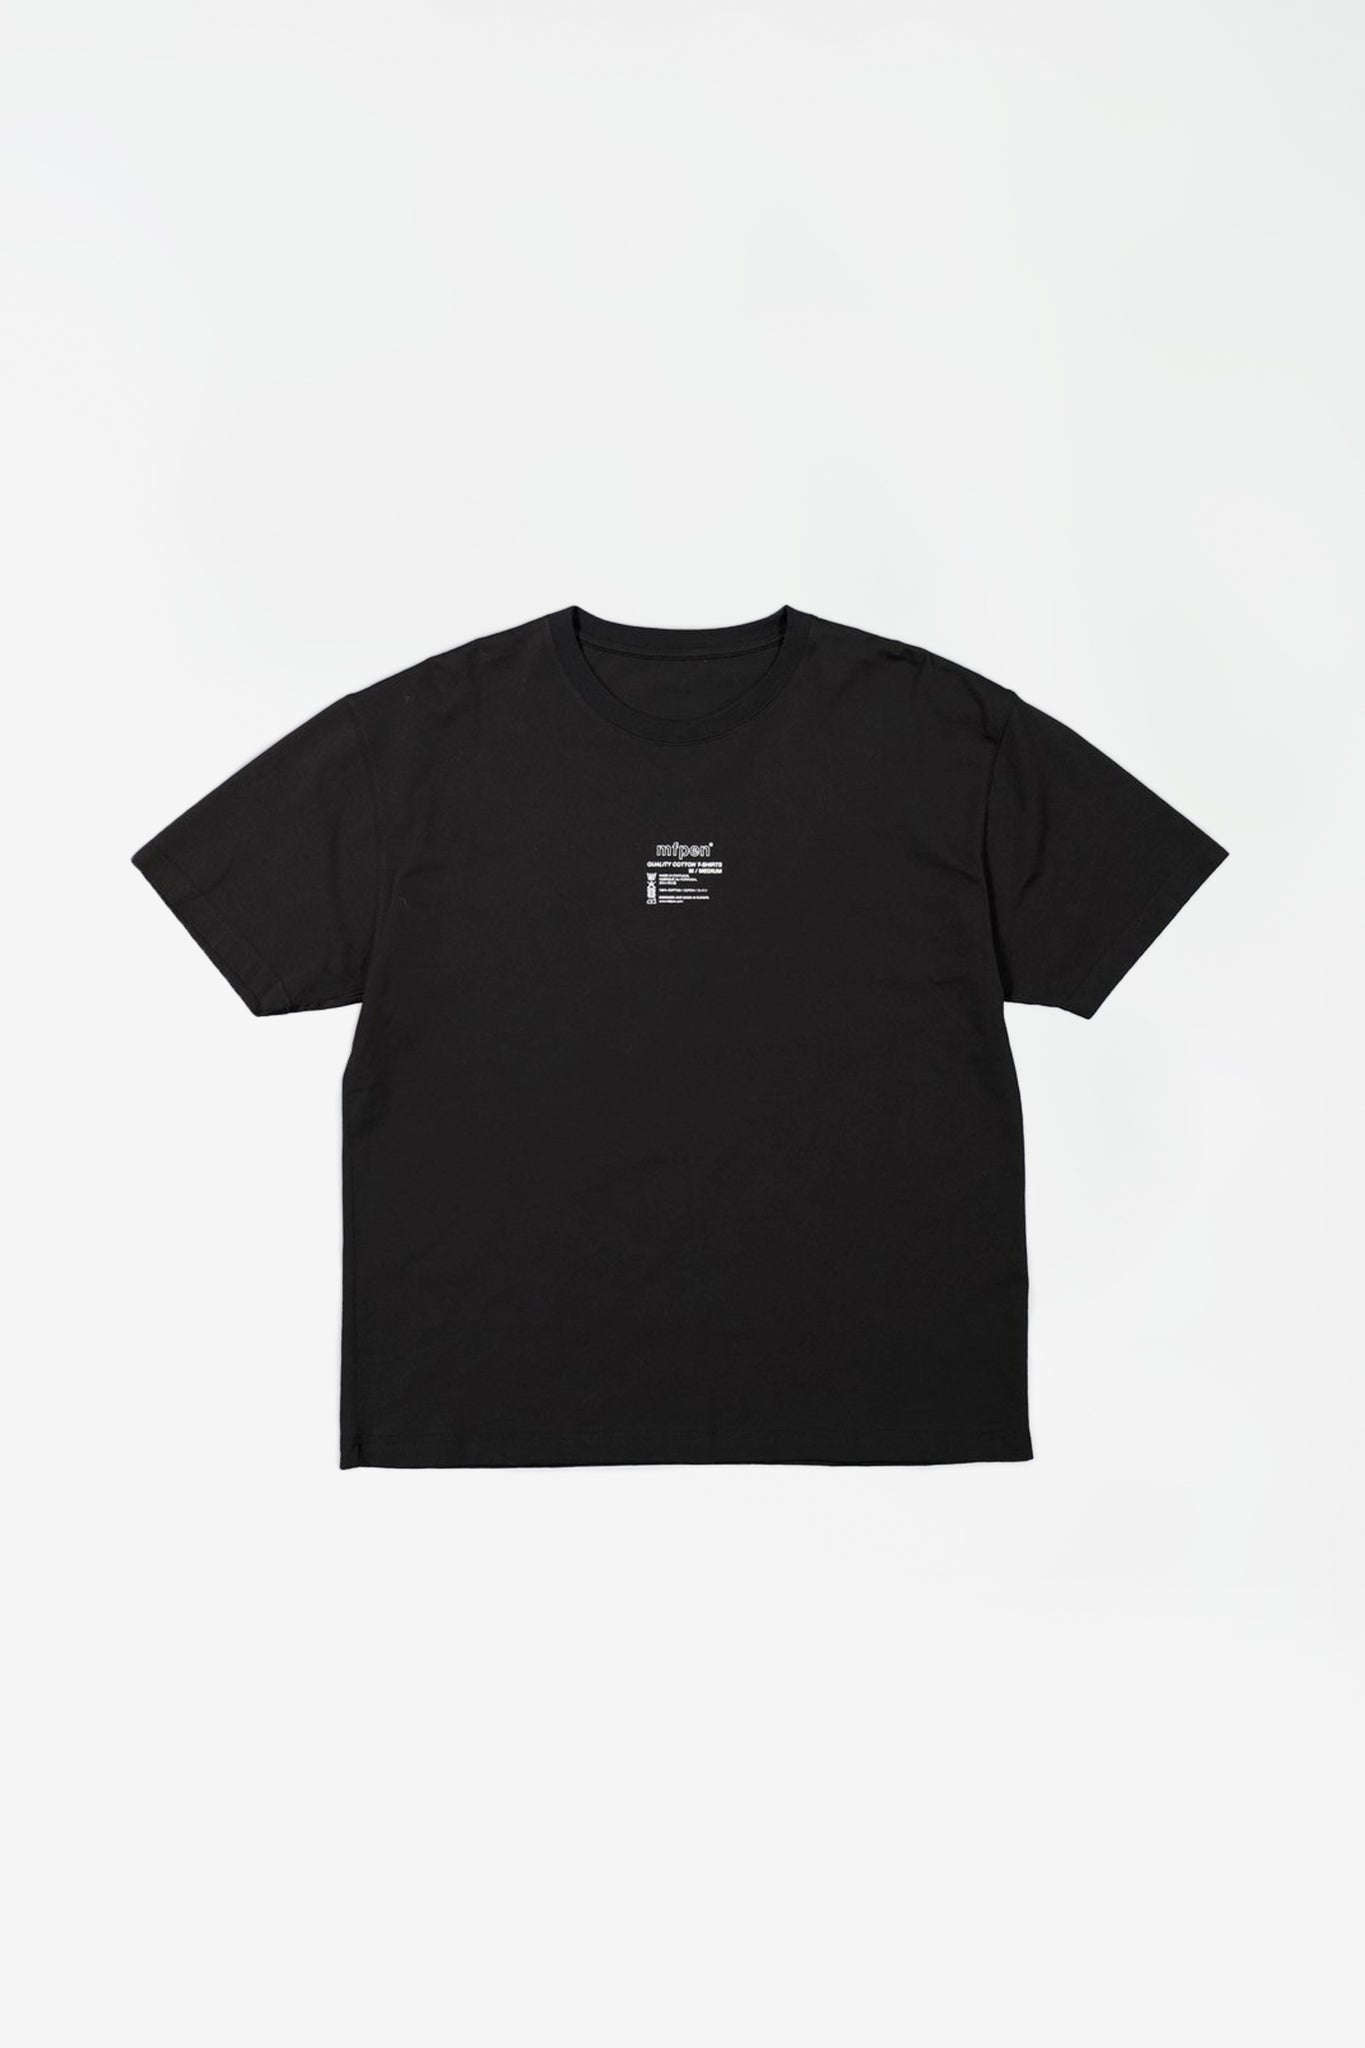 Tagless t-shirt black